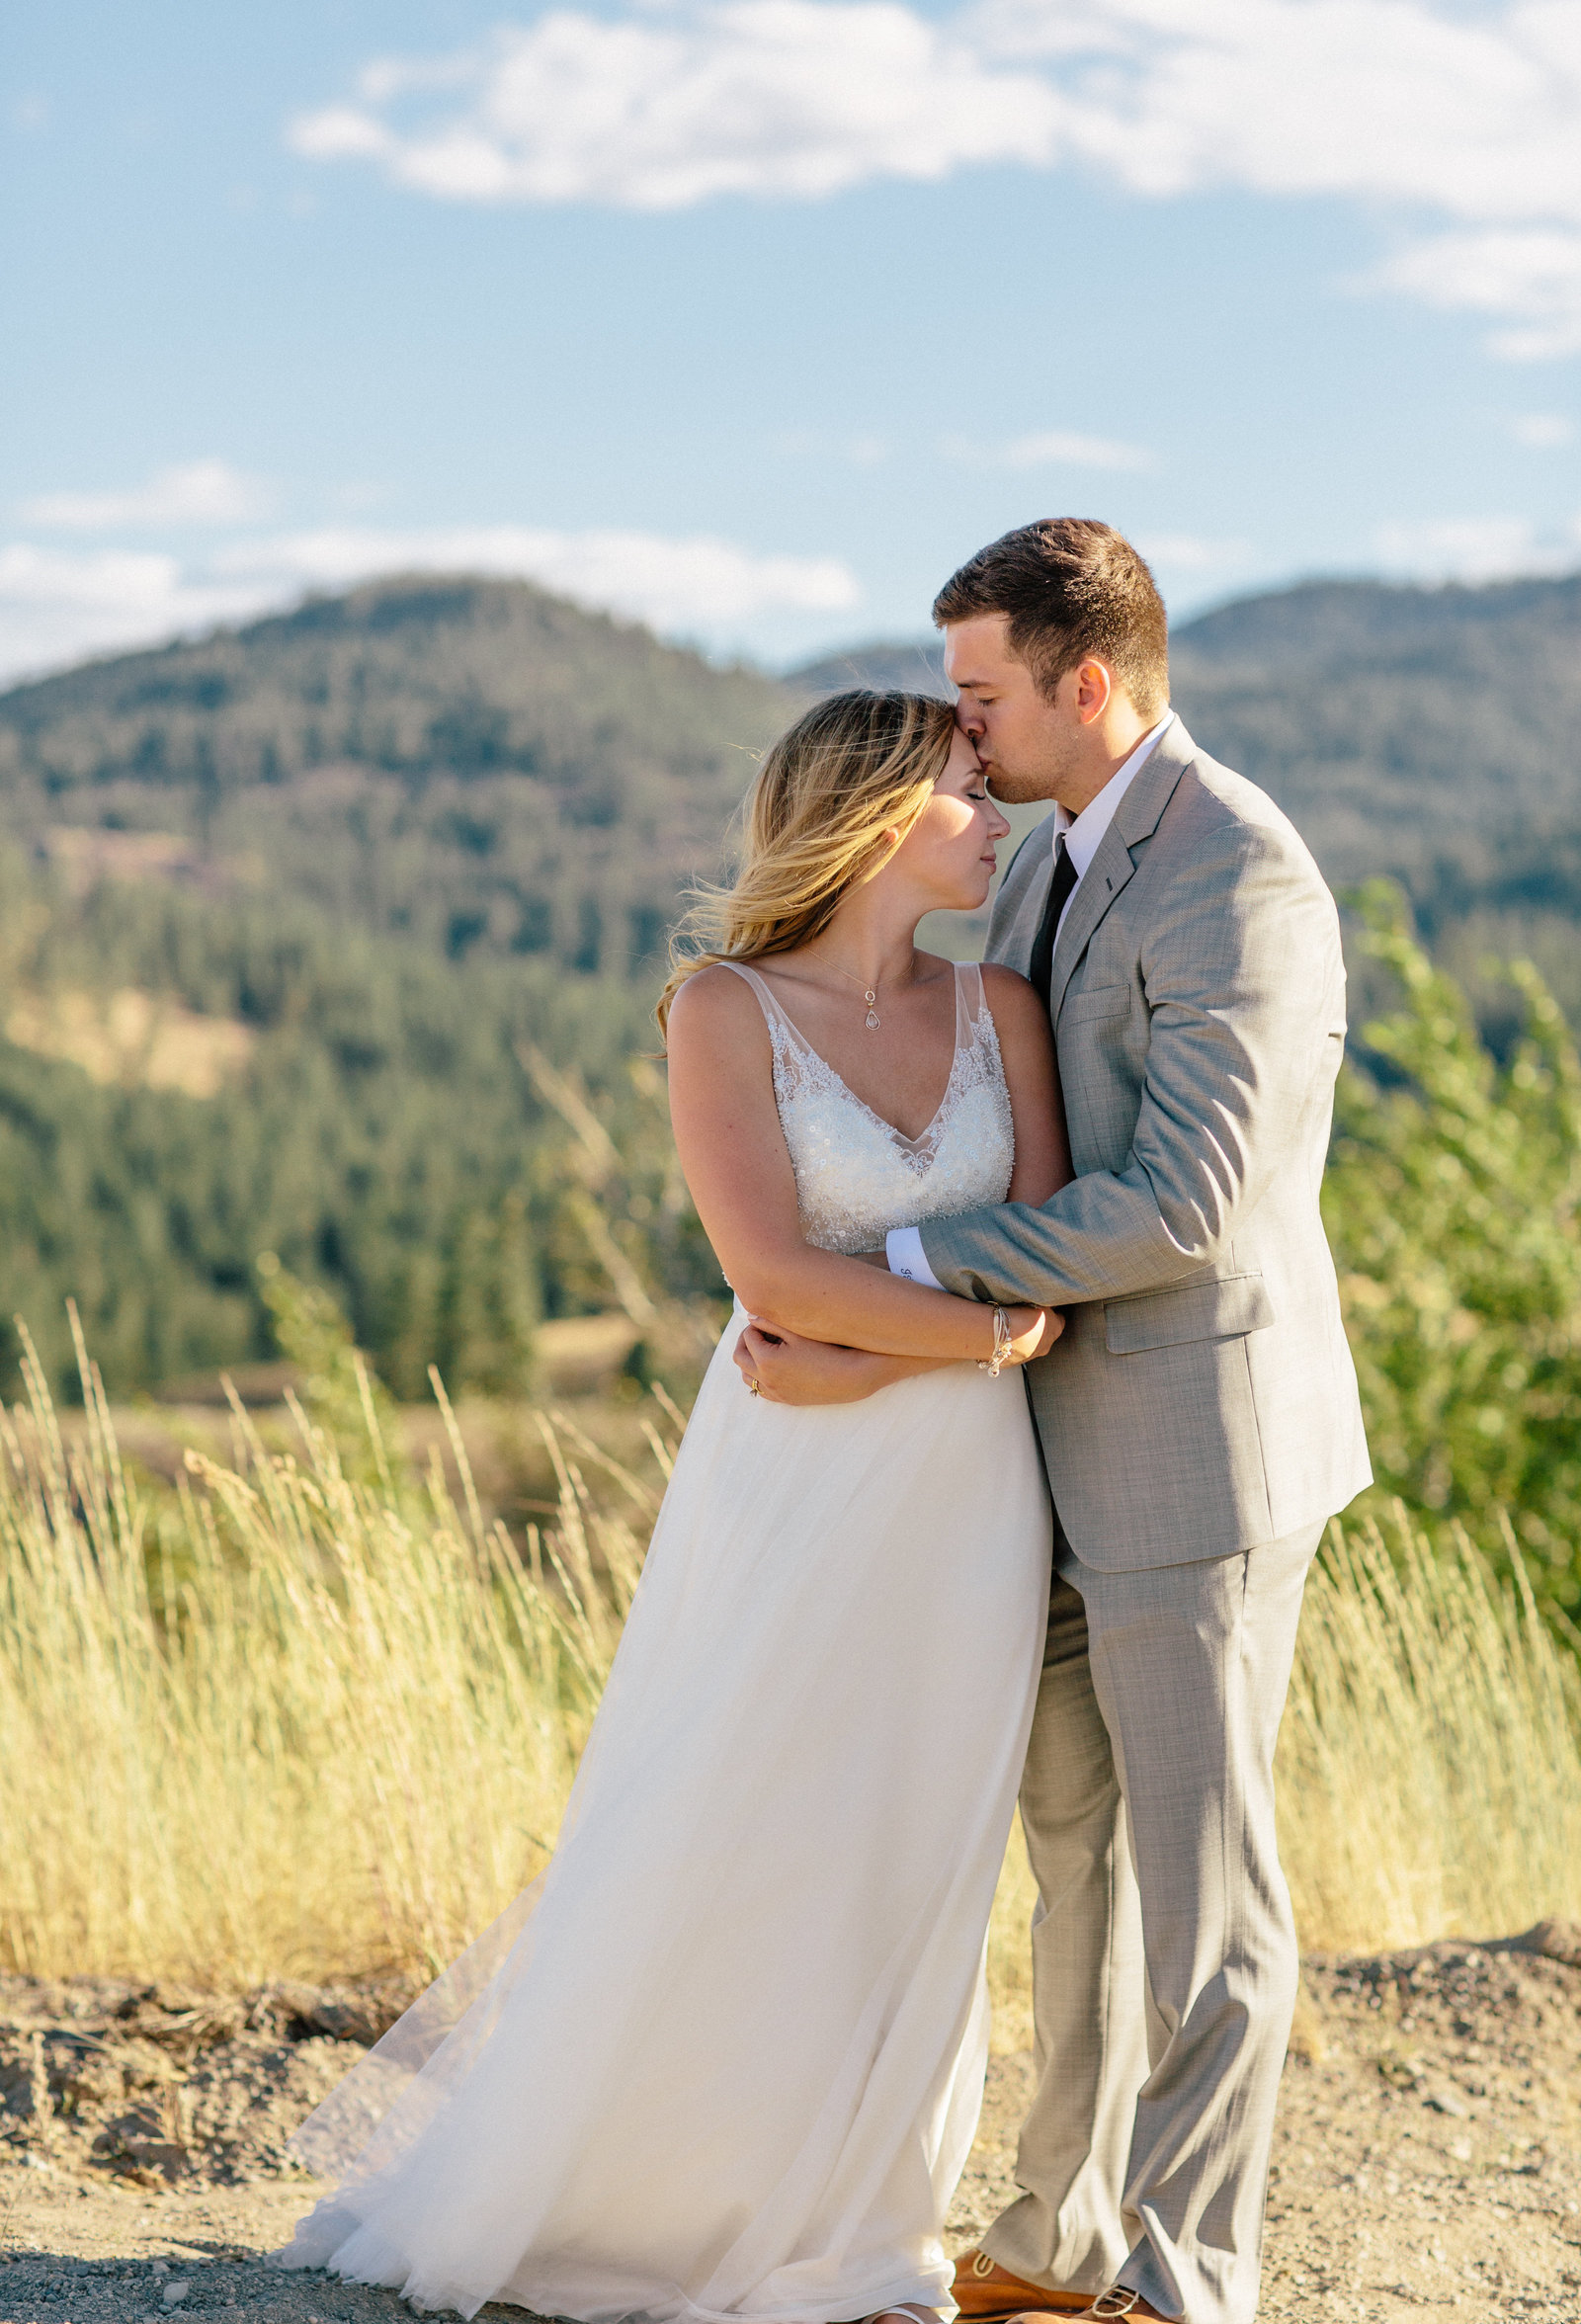 MelissaJSoule-CaliforniaWeddingPhotographer-9739